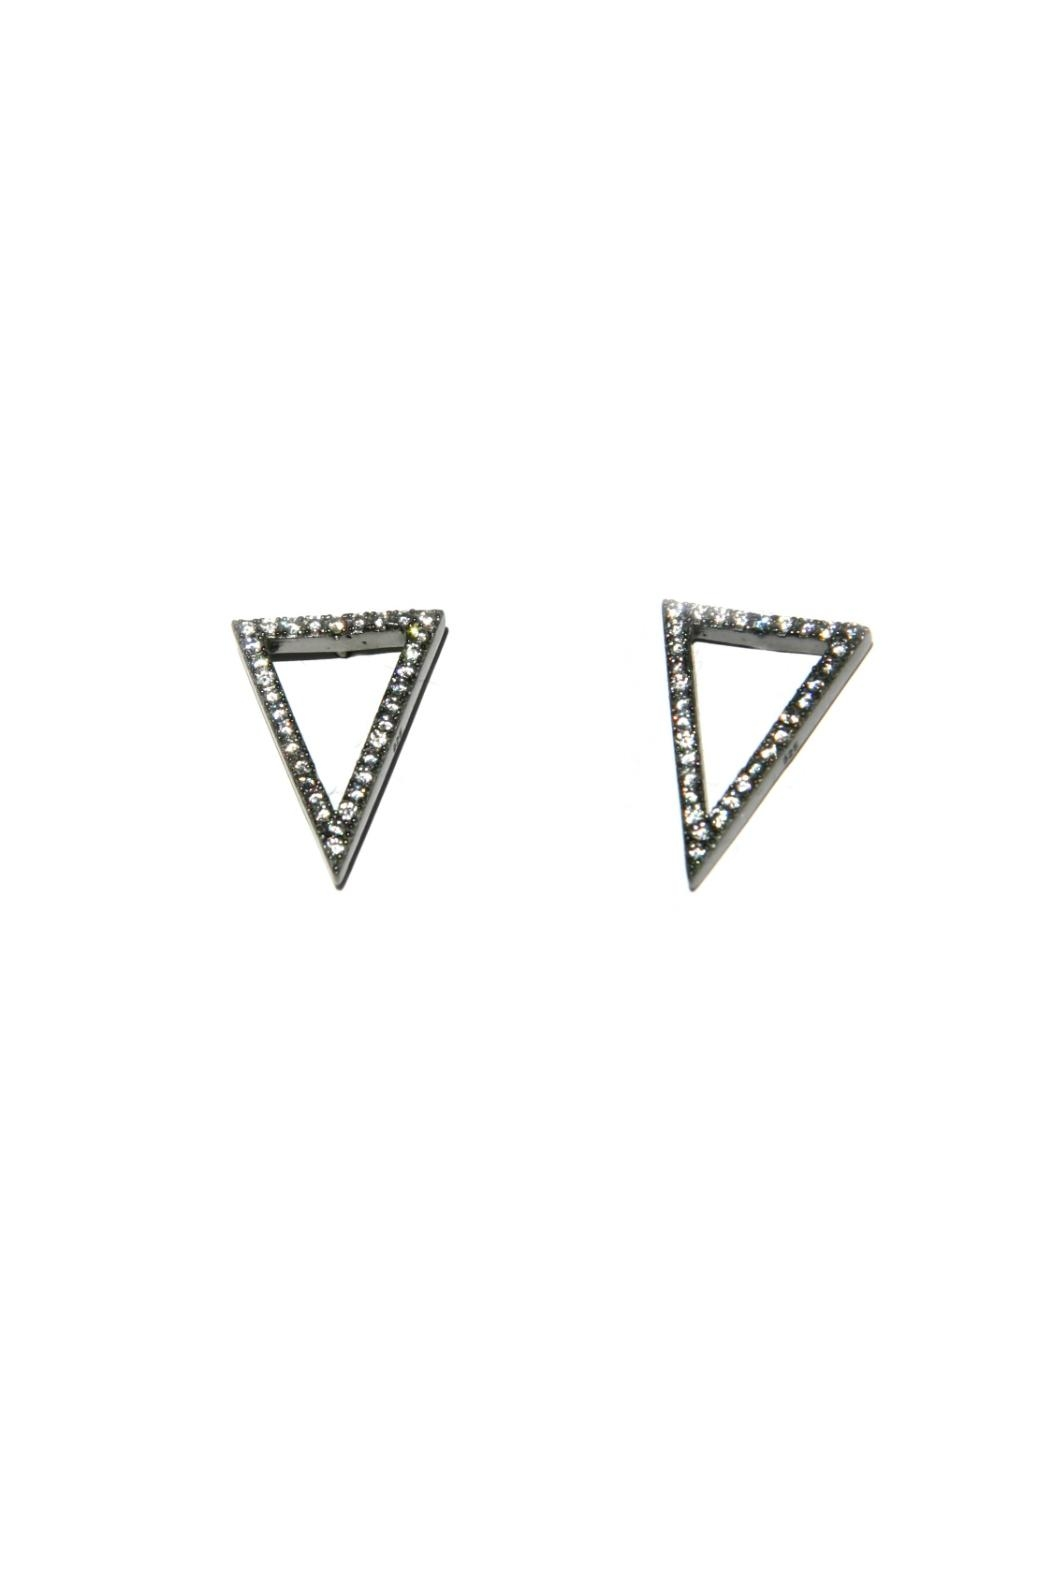 Light Years Collection Cz Triangle Earrings - Main Image